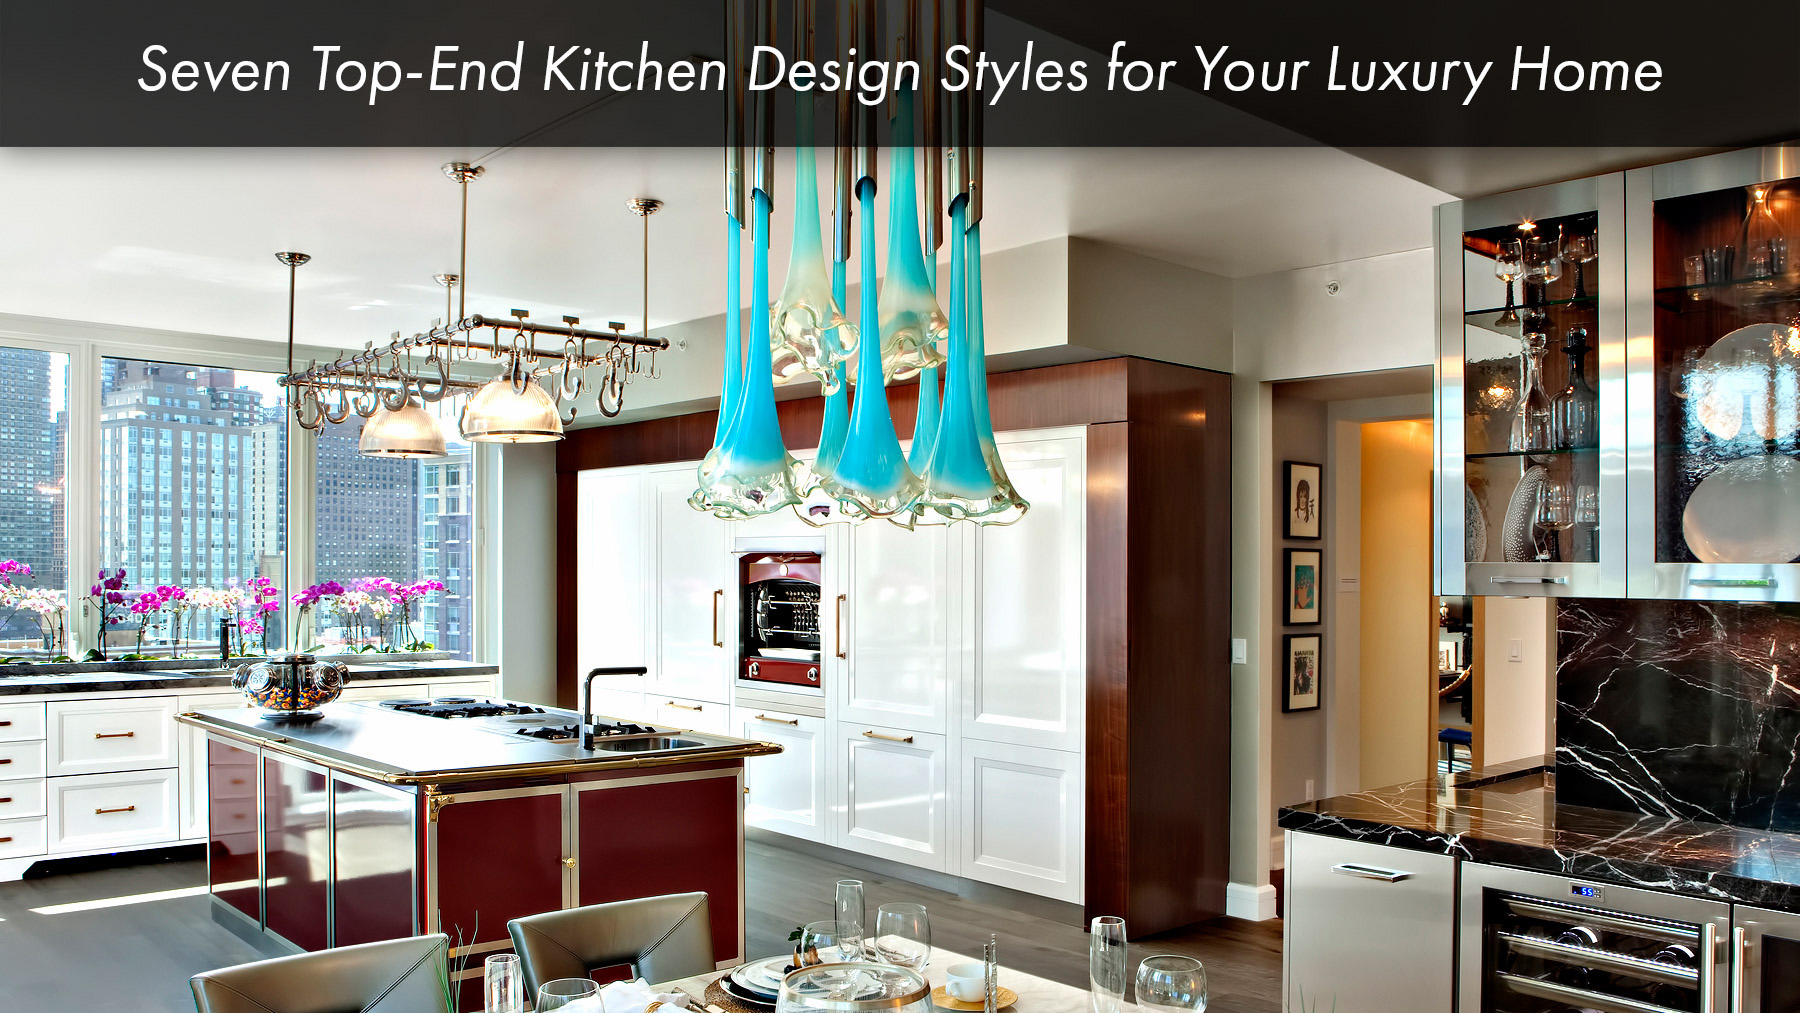 Seven Top-End Kitchen Design Styles for Your Luxury Home